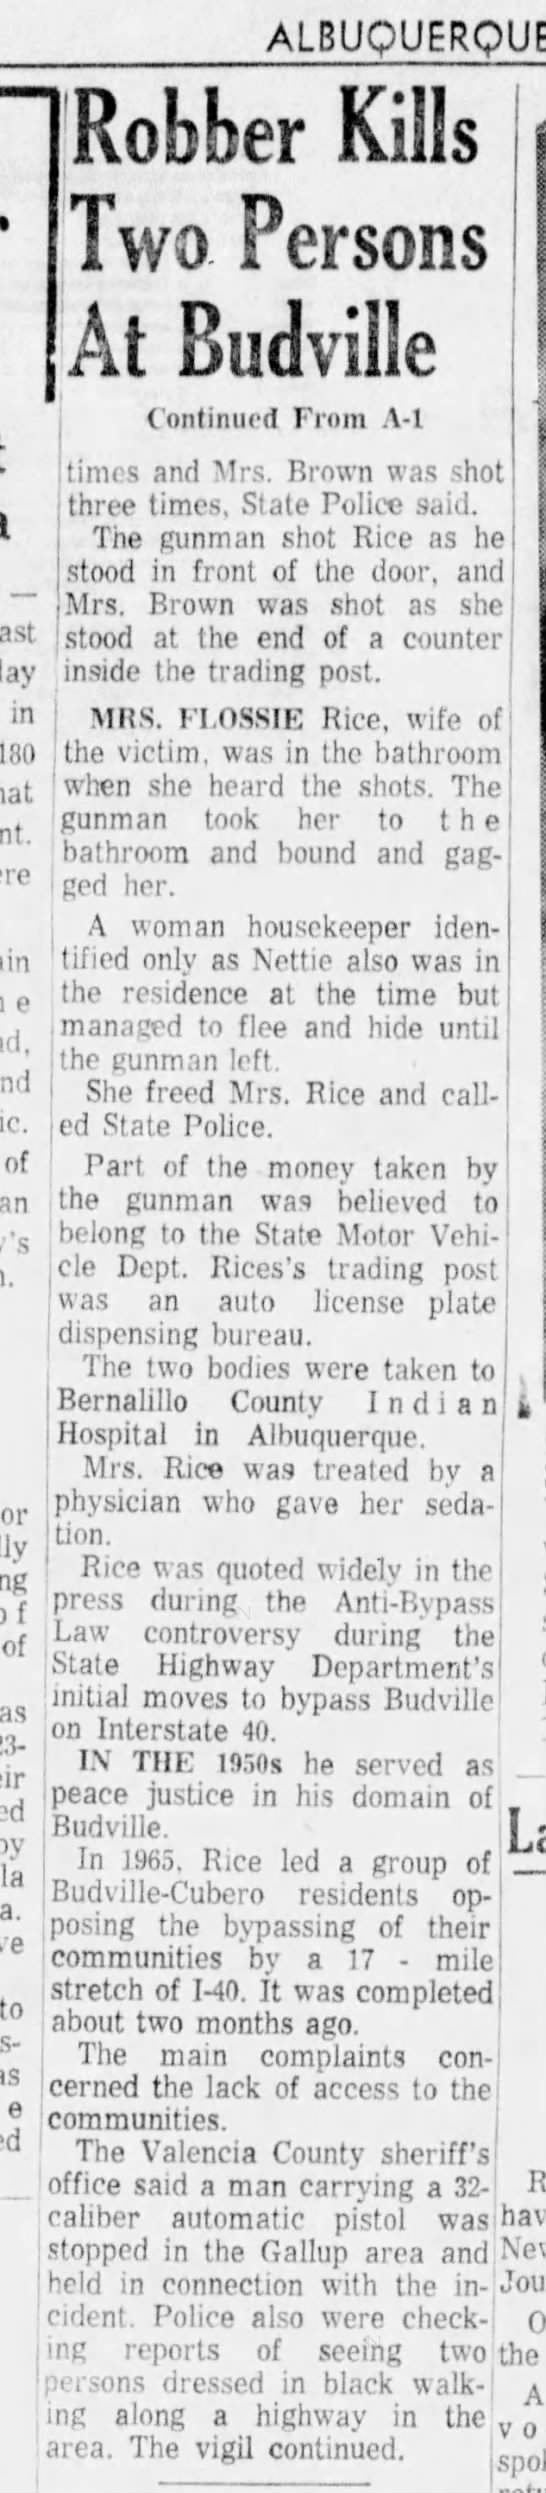 Bud Rice, Killed (page 2) Budville, NM November 19, 1967 - ALBUQUERQUE east in 180 of an f of Robber Kills...